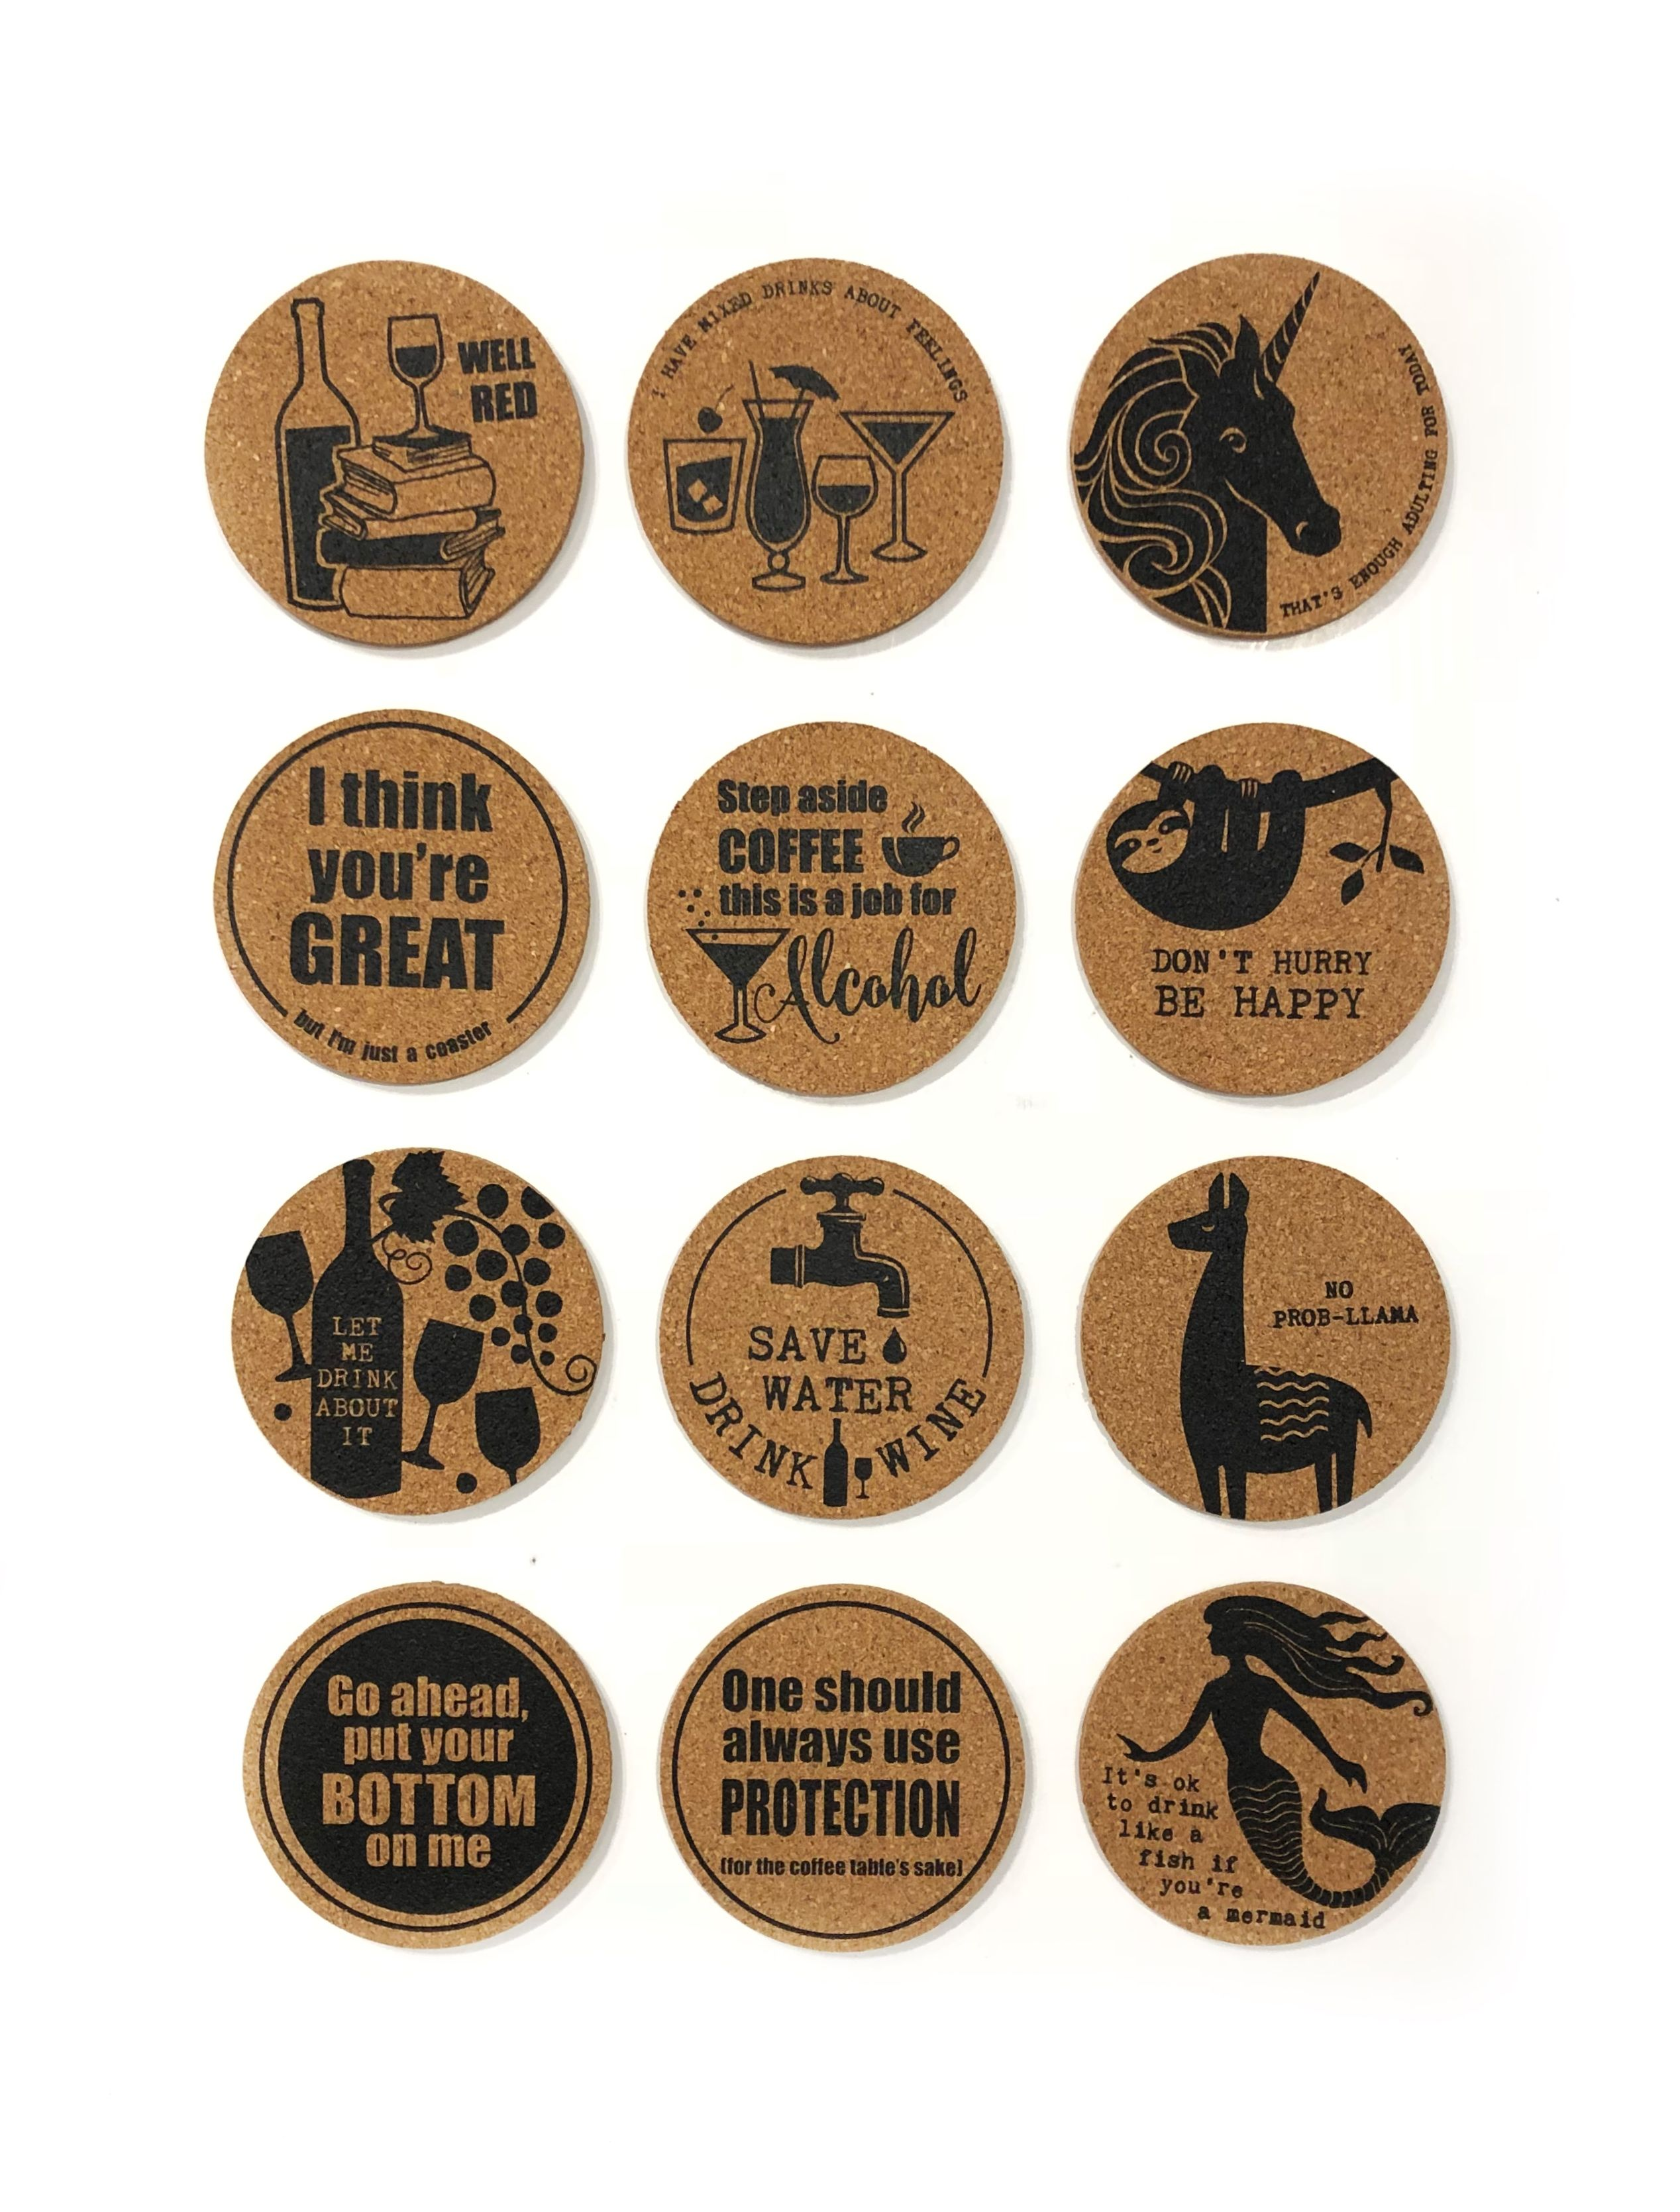 Cork coasters by ganz gifts available at twisted goods